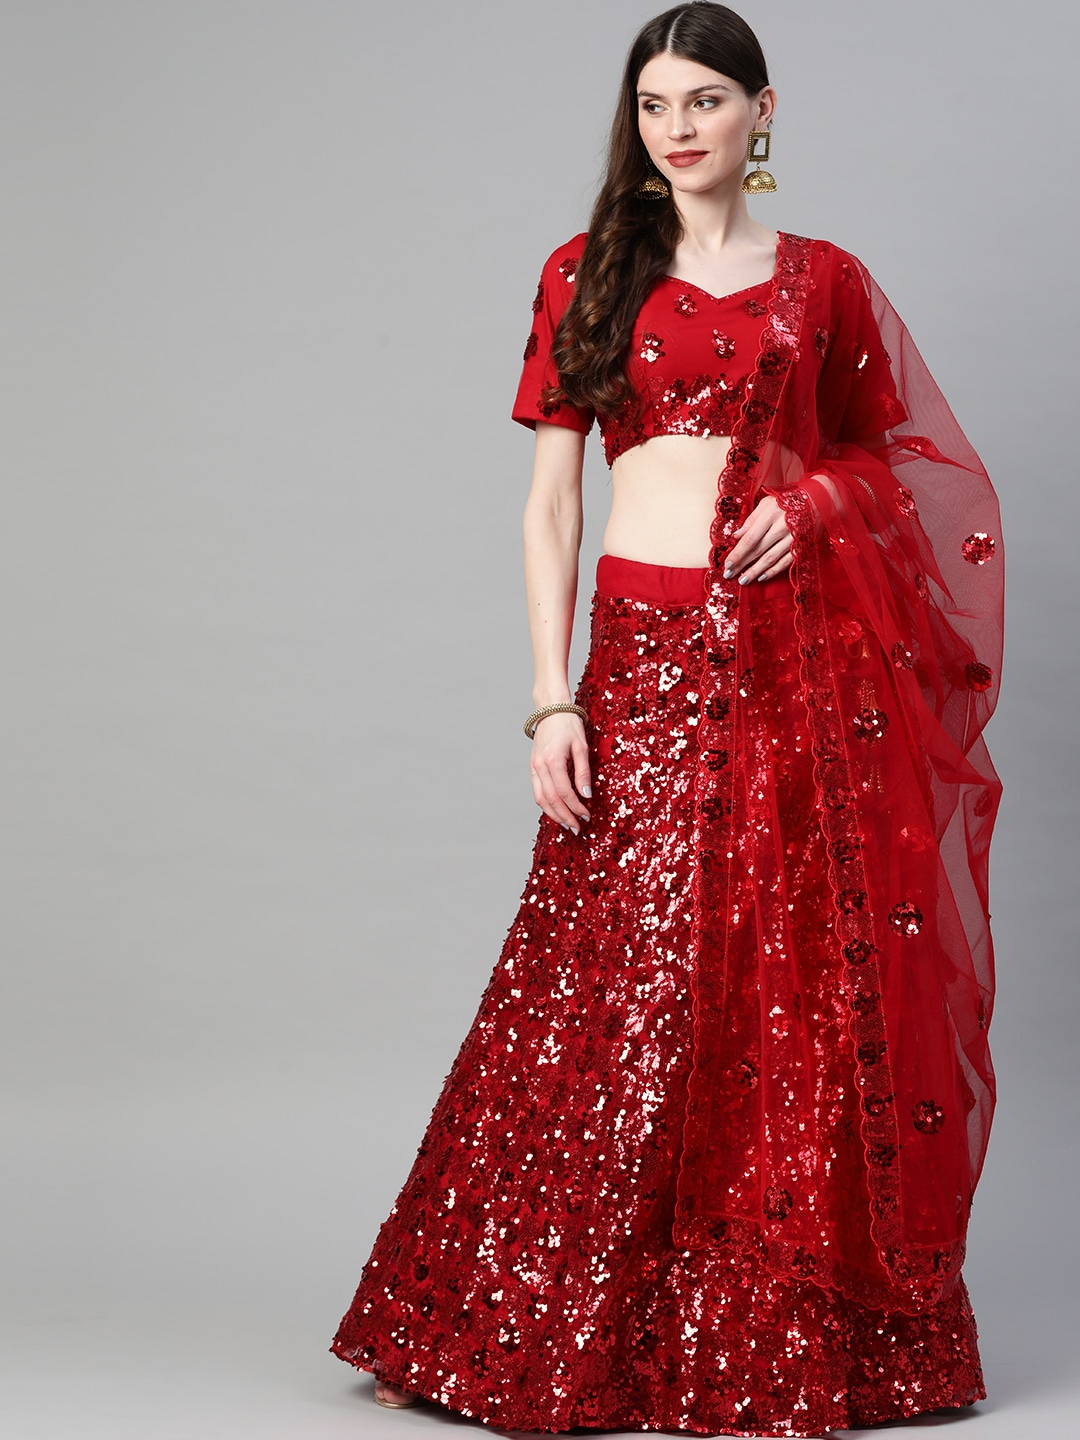 Red Sequinned Semi-Stitched Lehenga & Blouse with Dupatta